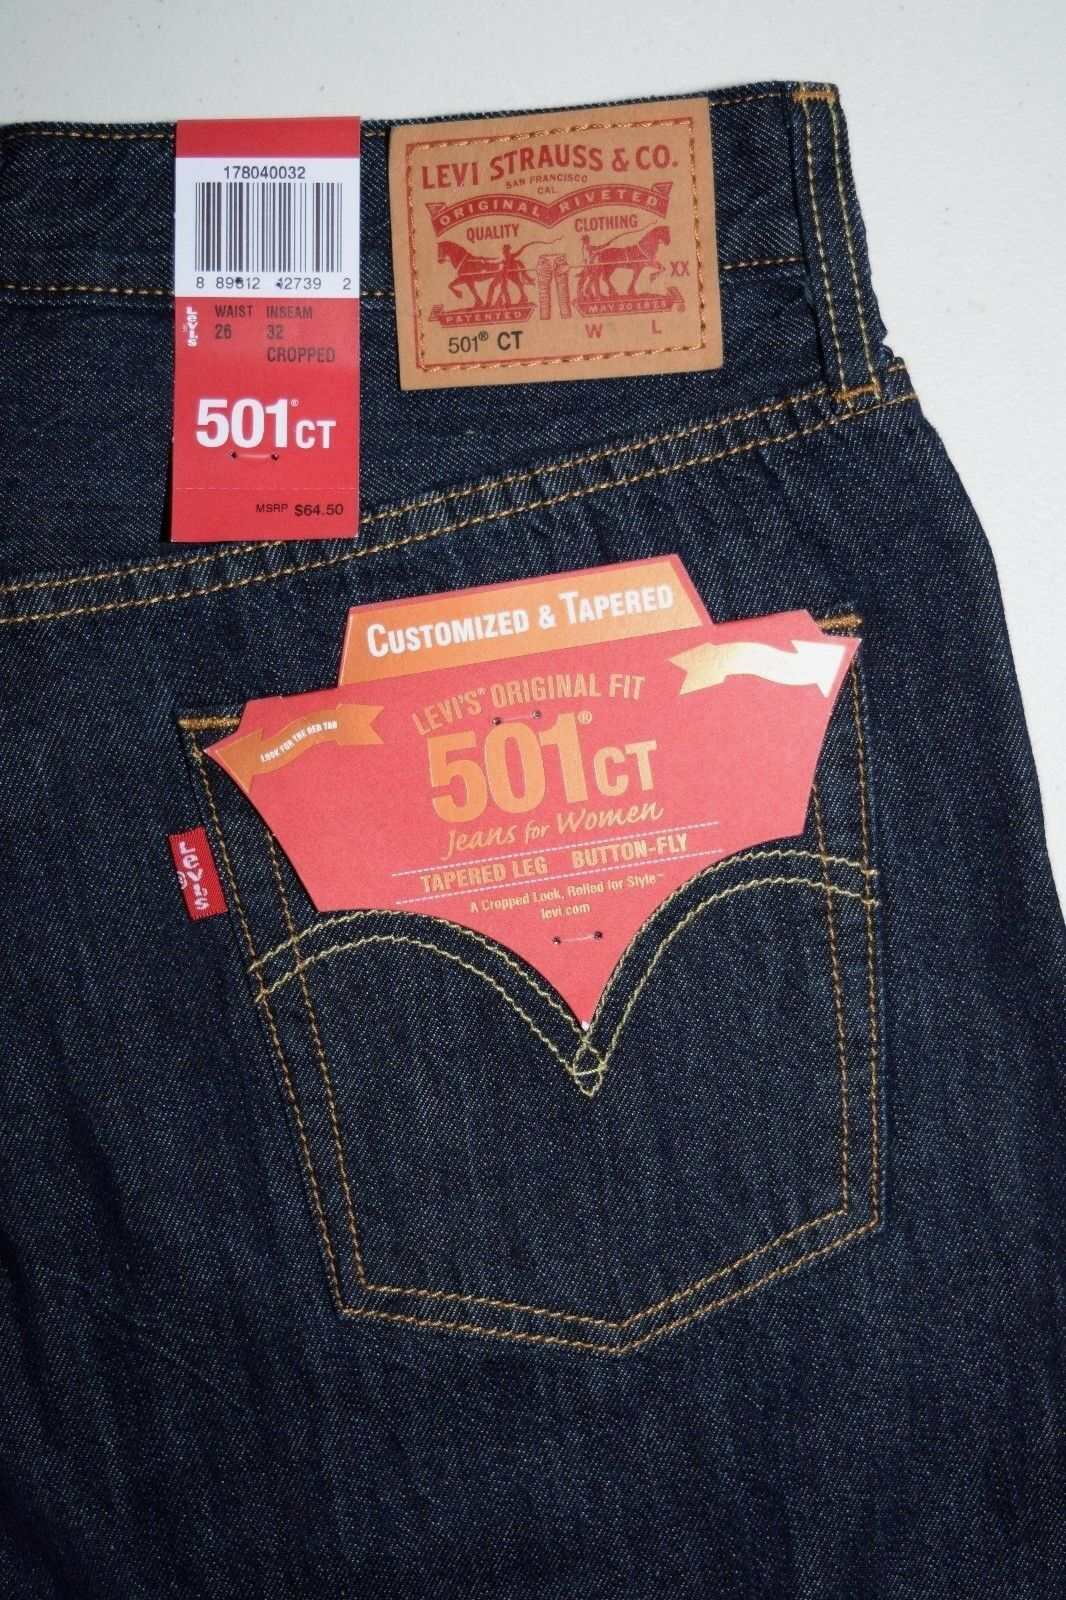 Levi's 501 CT Women's Customized & Tapered Jeans